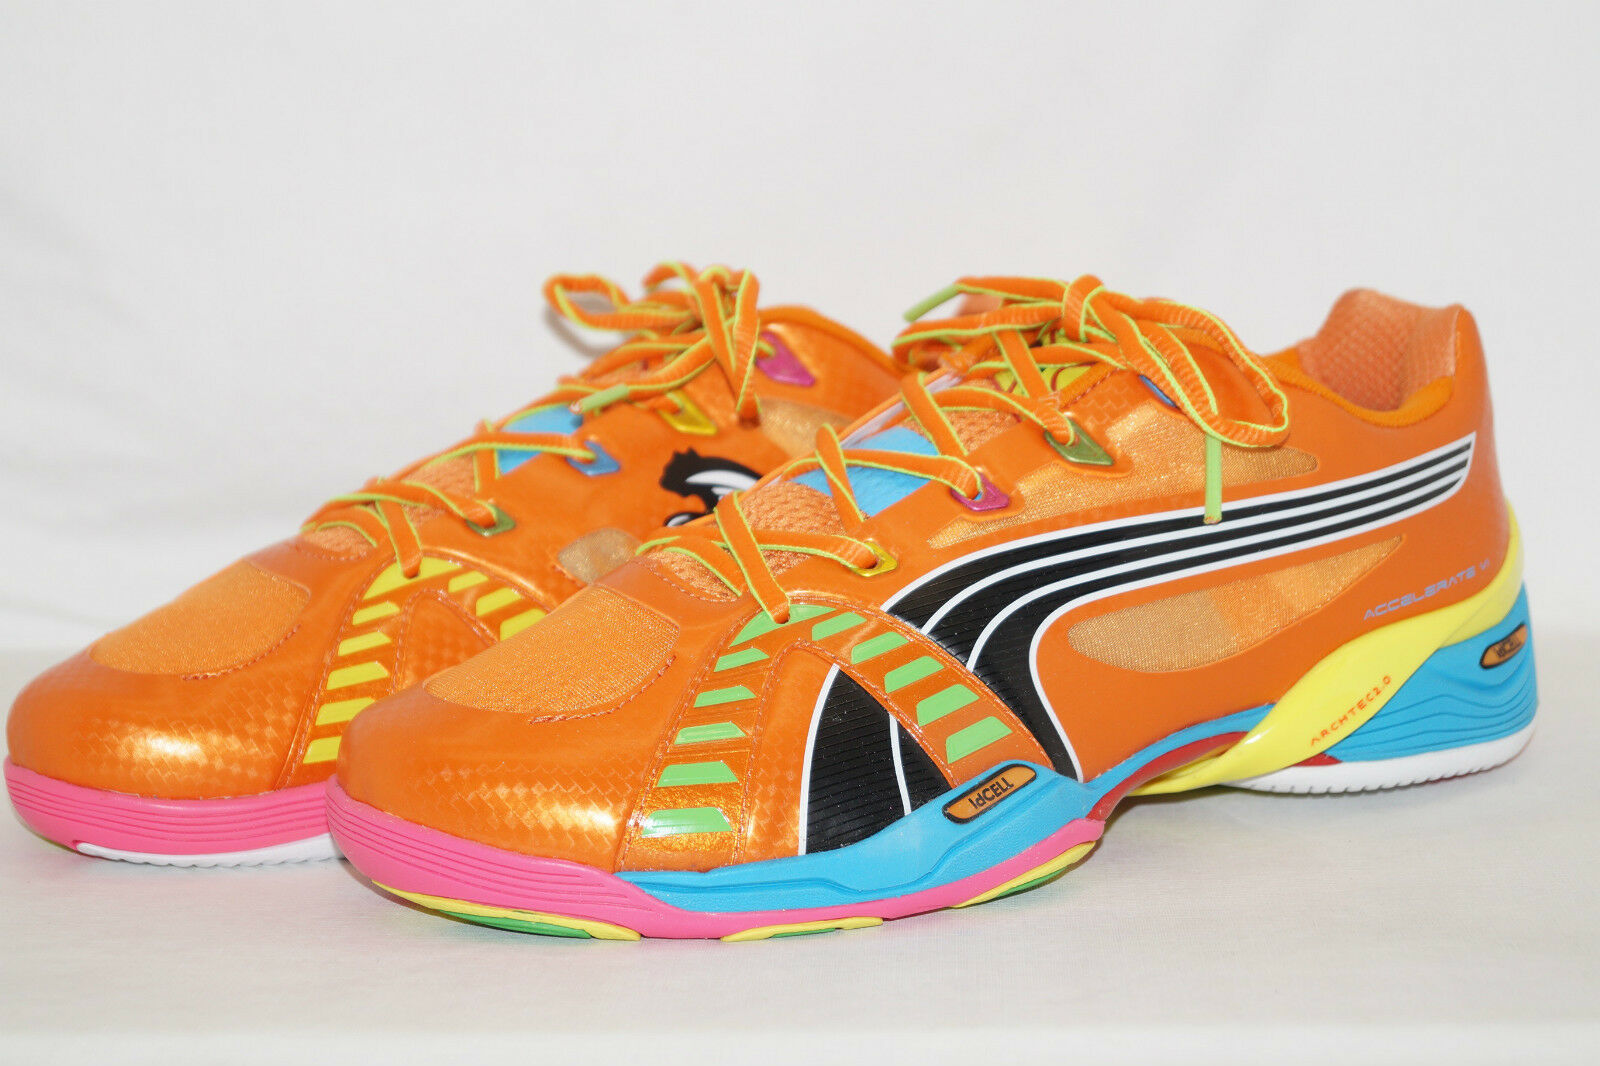 PUMA ACCELERATE VI 6 TRICKS Orange Gr.42 5UK.8 5 Handballschuhe Indoor 102401 01